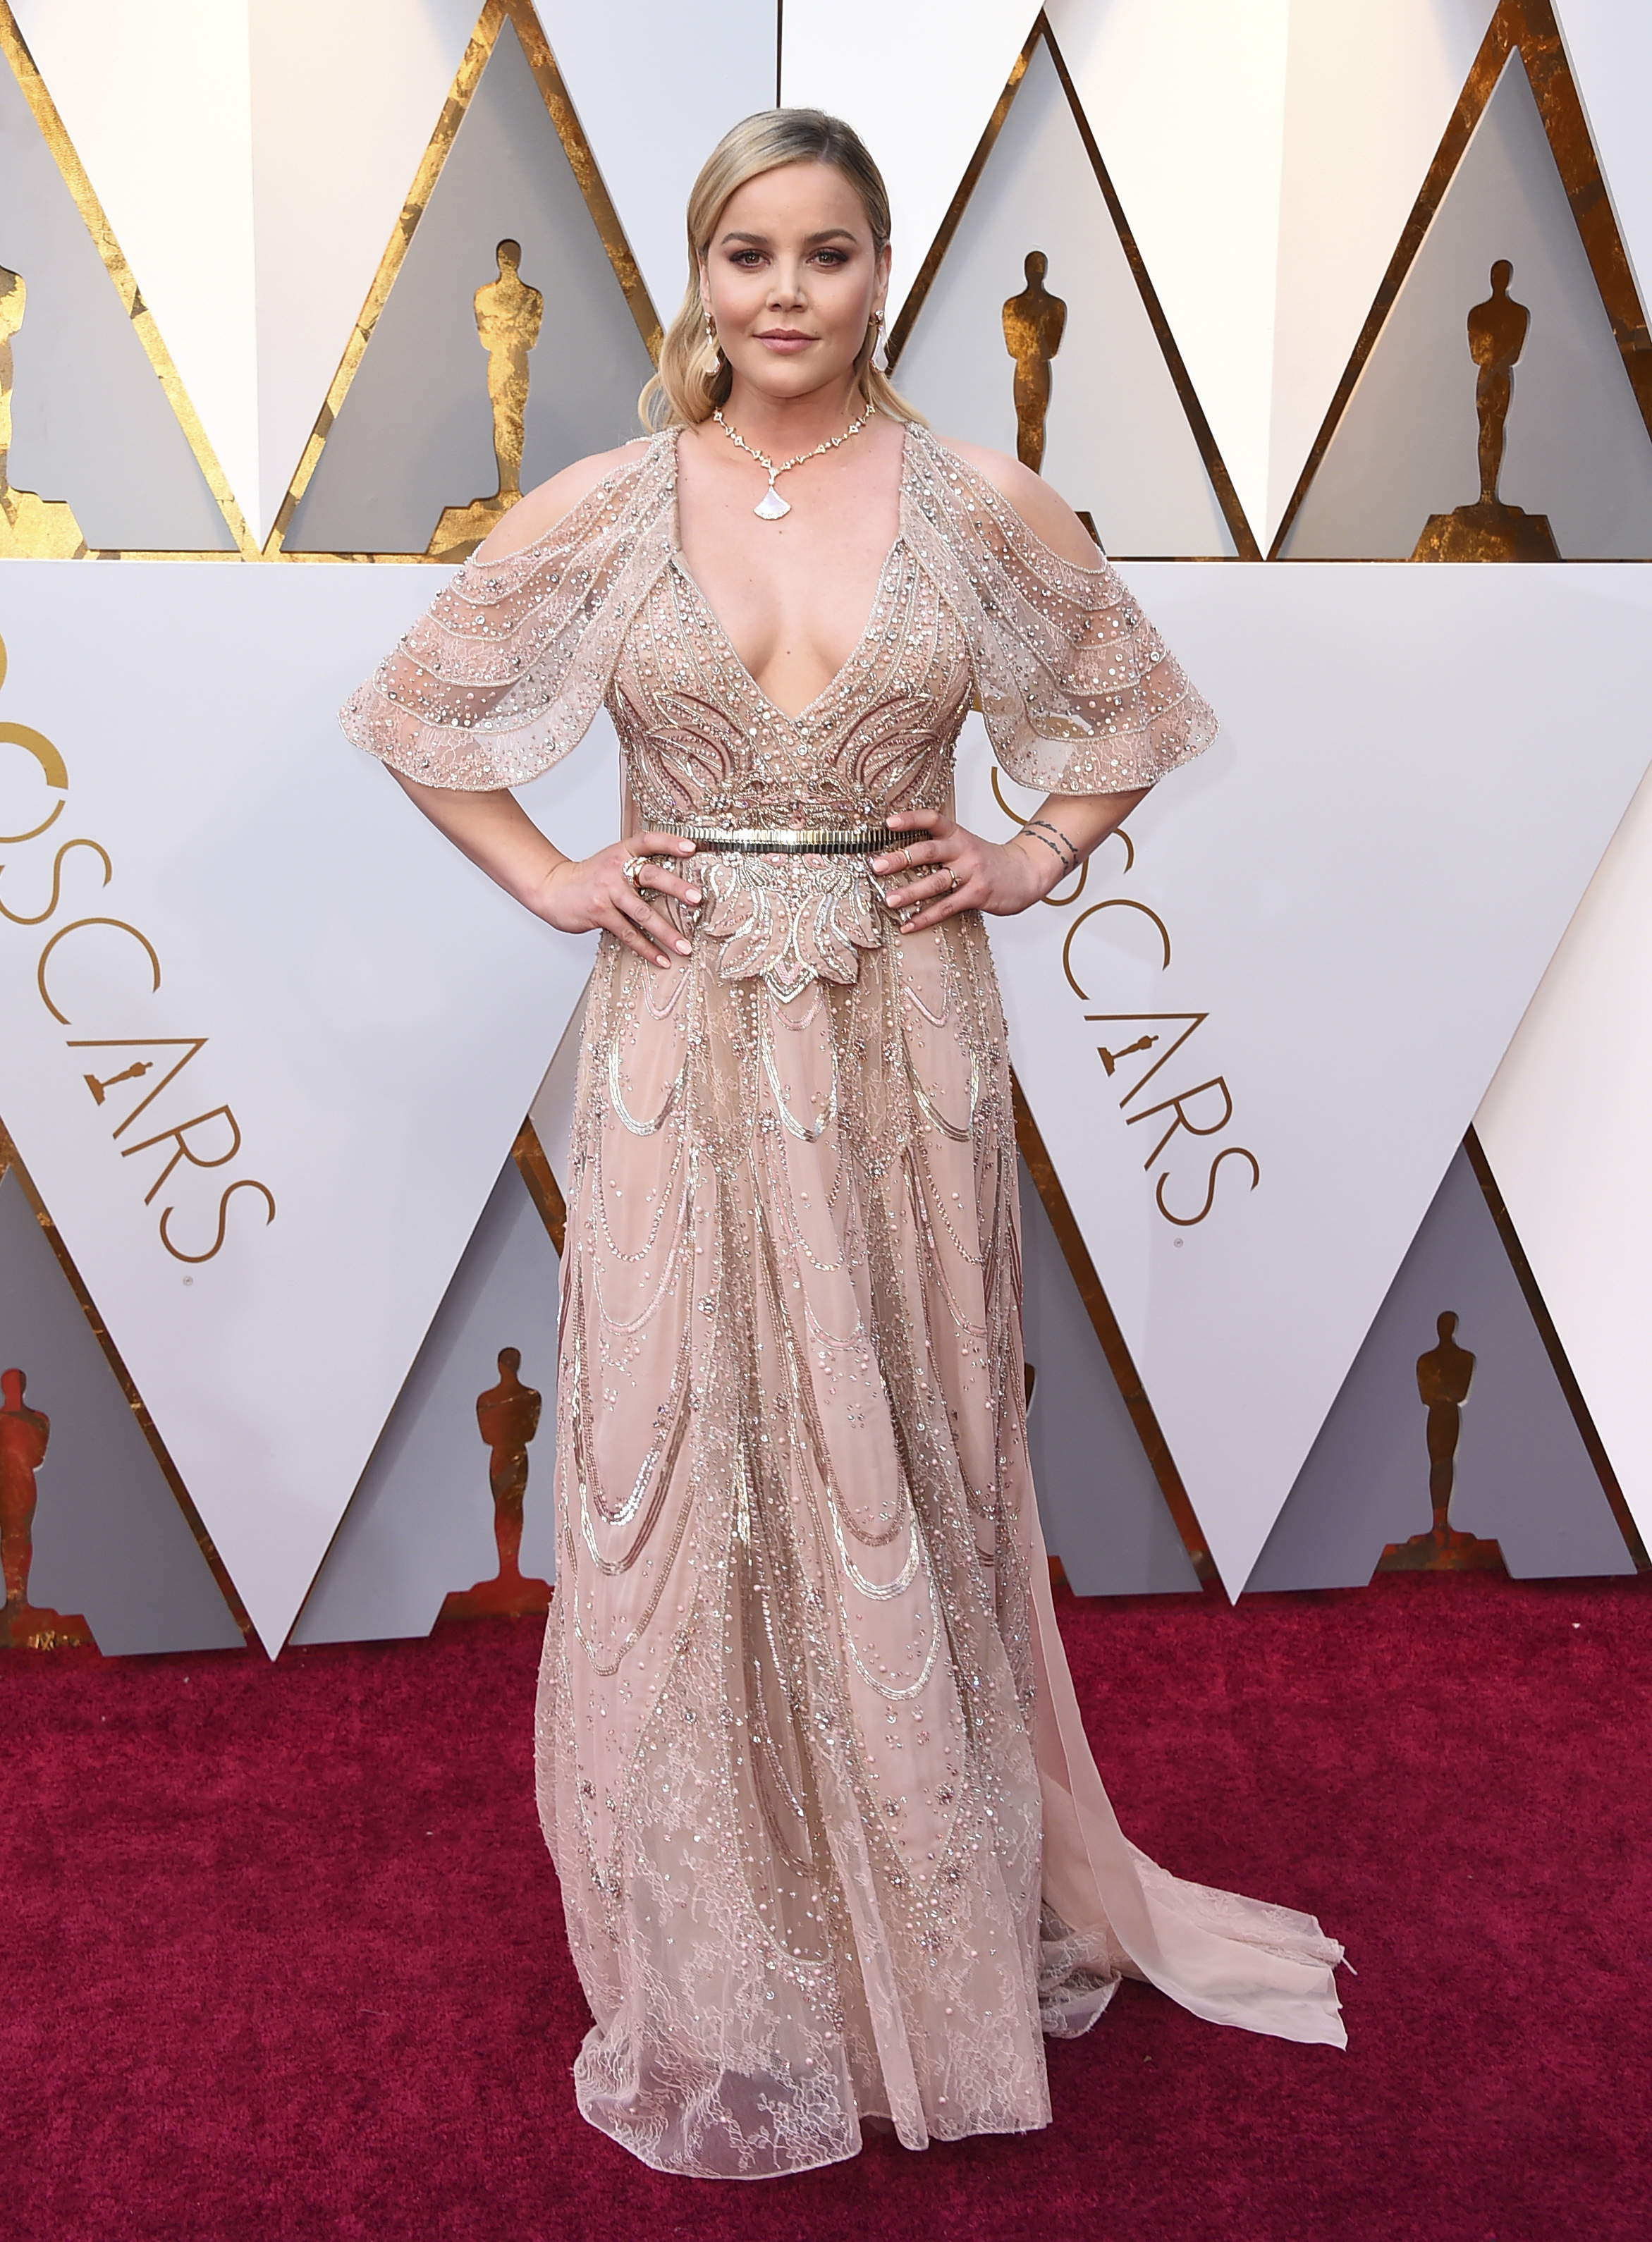 <div class='meta'><div class='origin-logo' data-origin='none'></div><span class='caption-text' data-credit='Jordan Strauss/Invision/AP'>Abbie Cornish arrives at the Oscars on Sunday, March 4, 2018, at the Dolby Theatre in Los Angeles.</span></div>